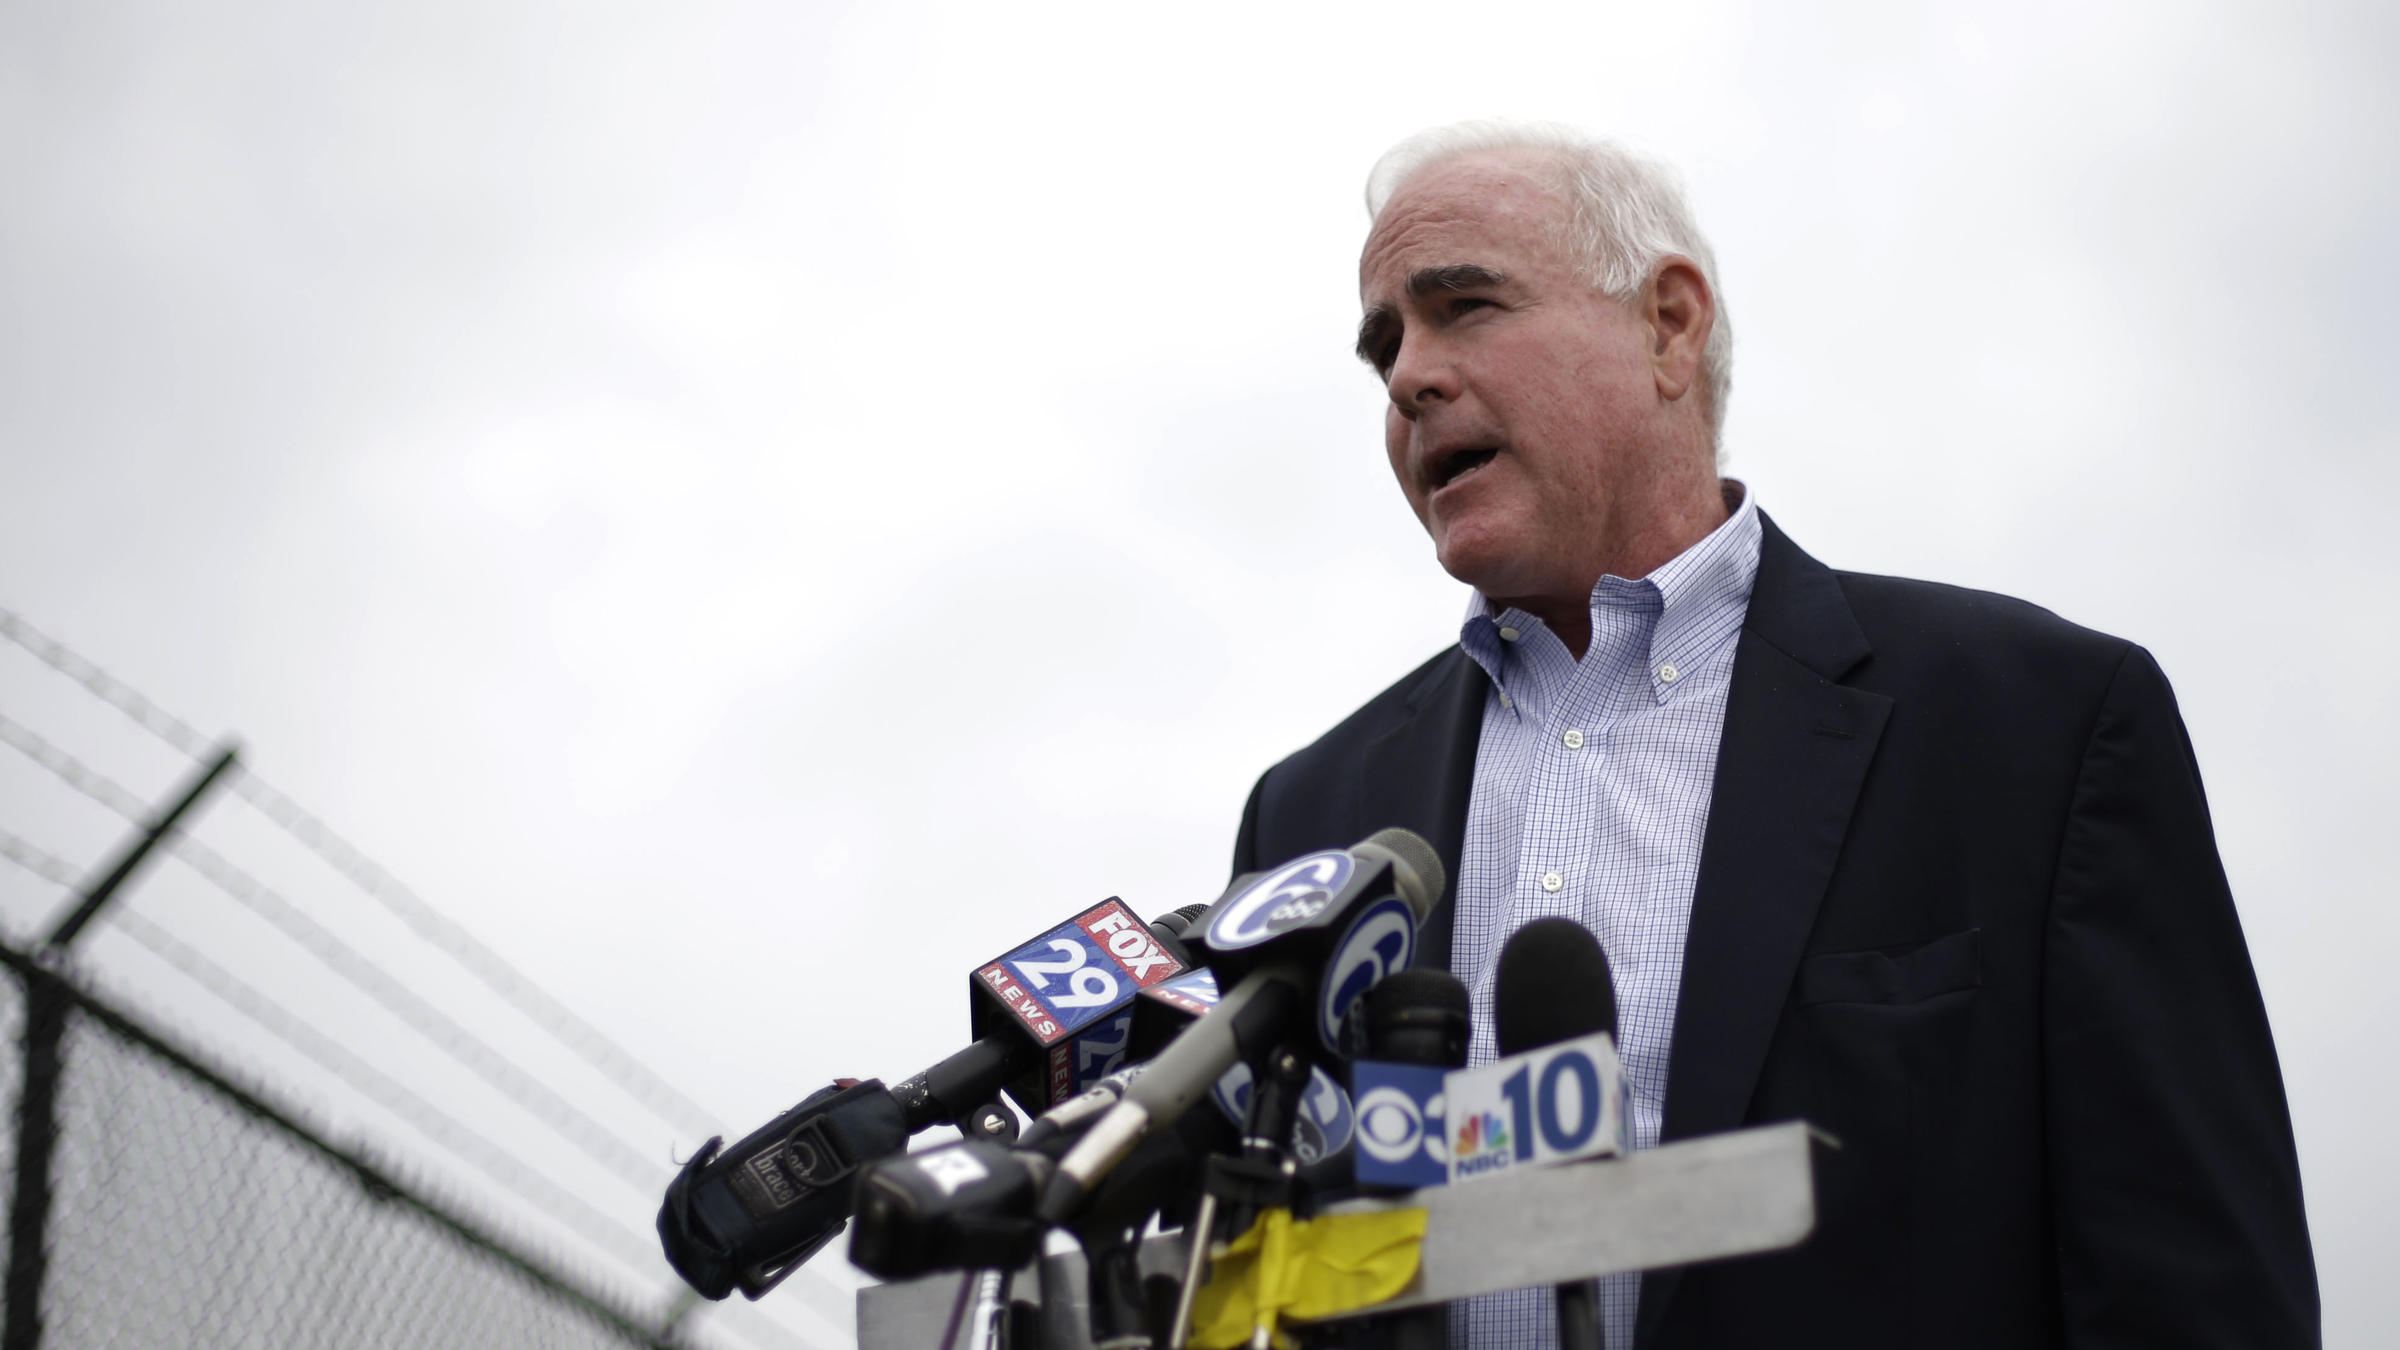 Midstate GOP Congressman Patrick Meehan removed from Ethics Committee